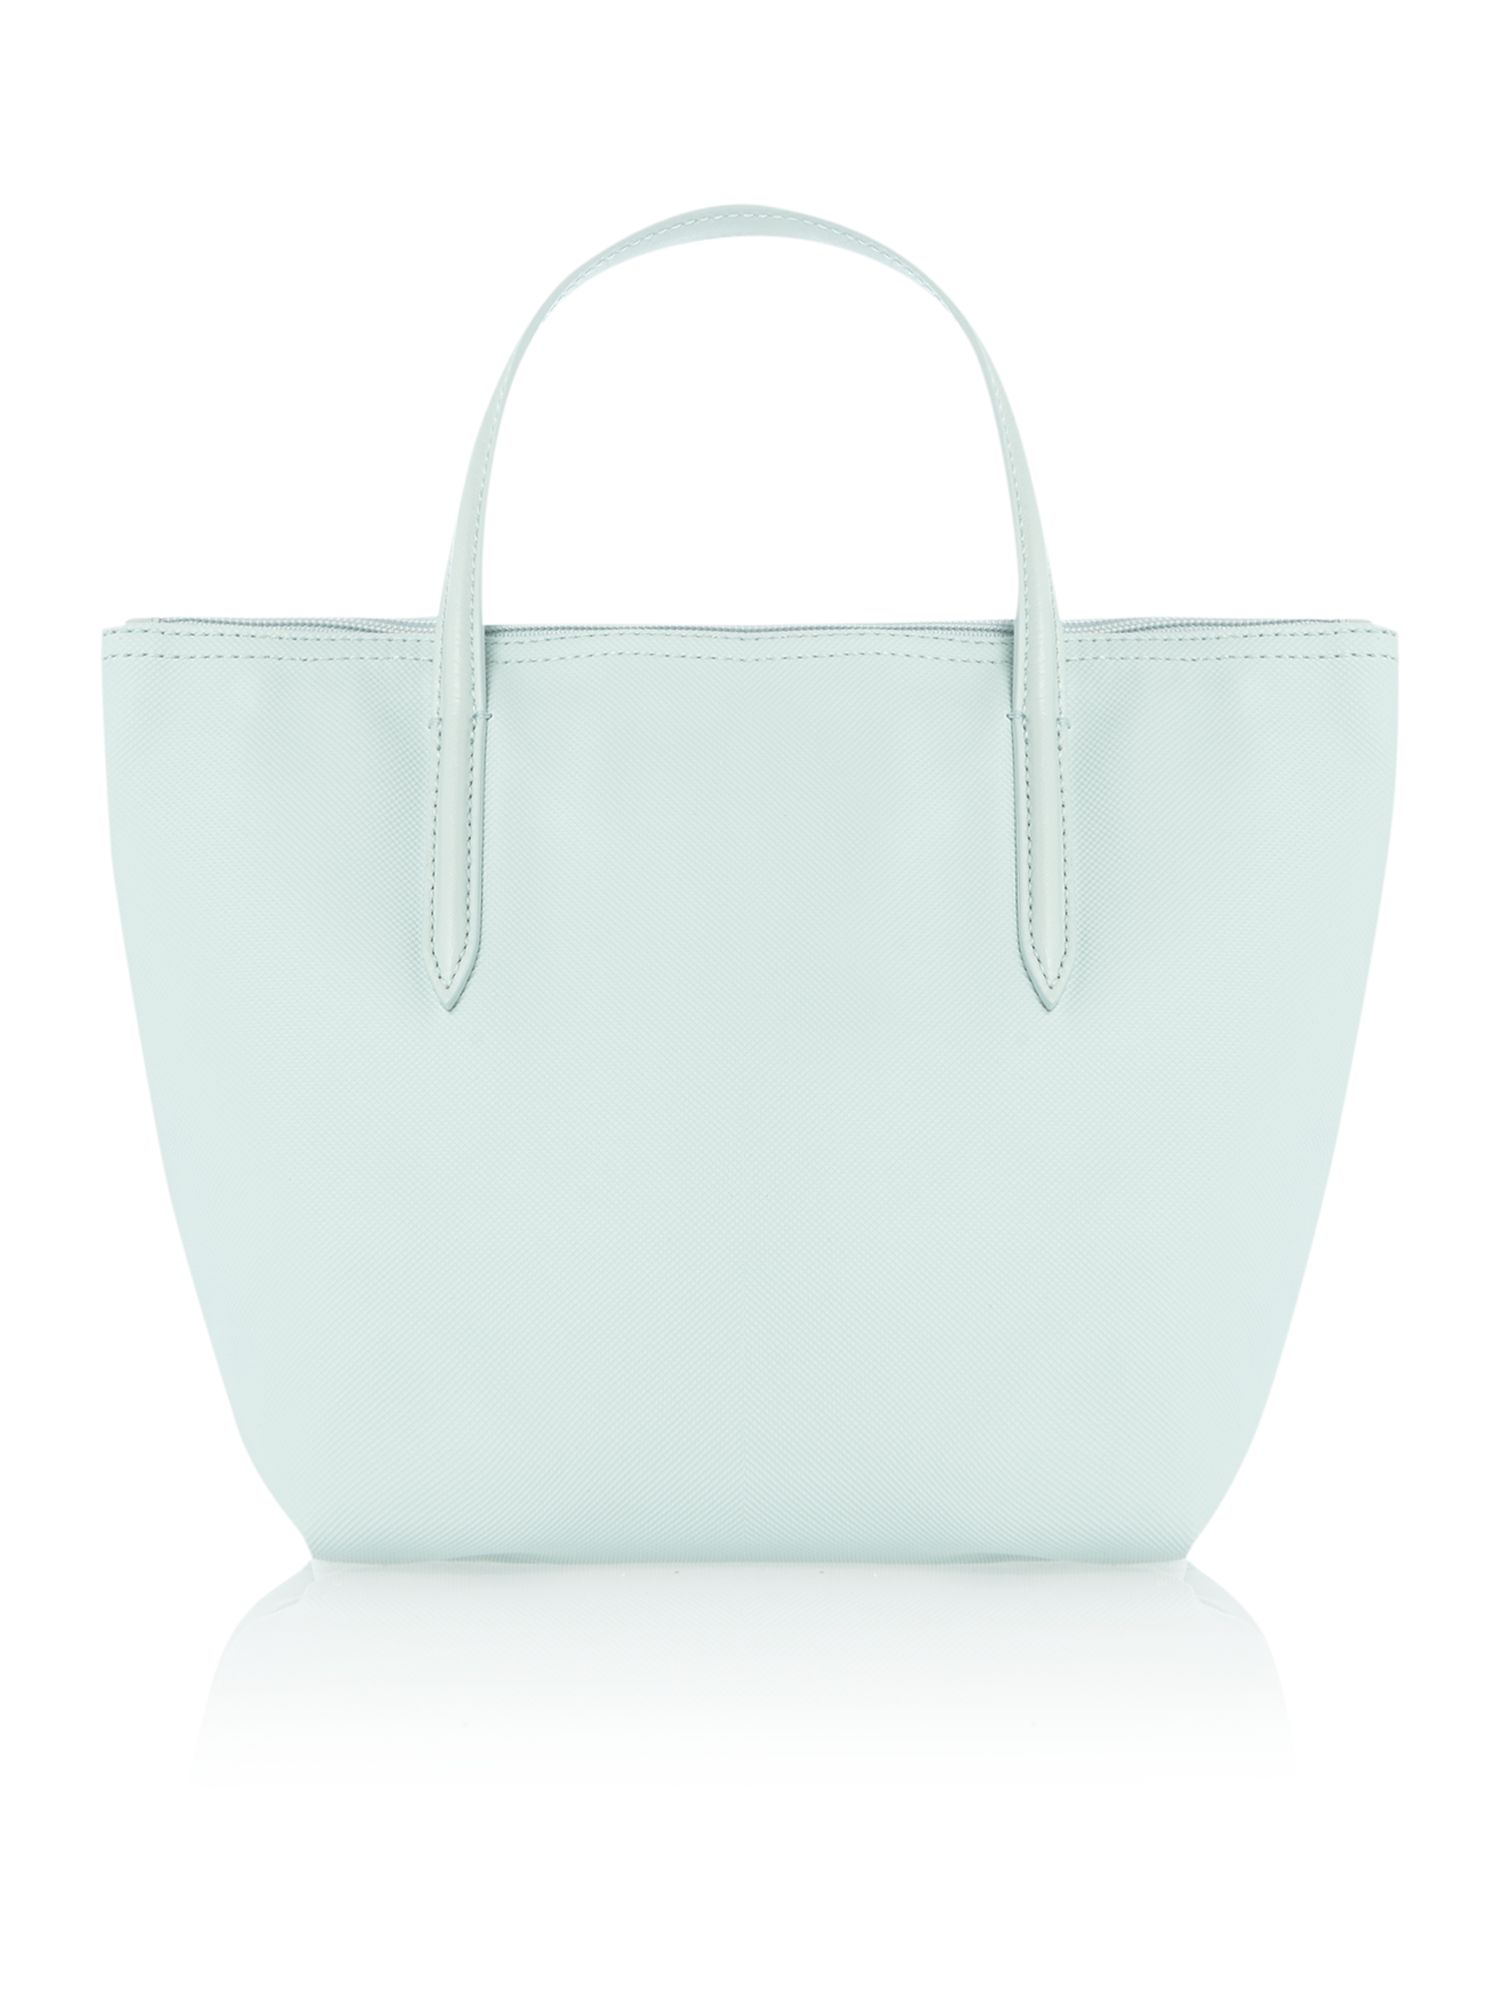 Mint small tote bag